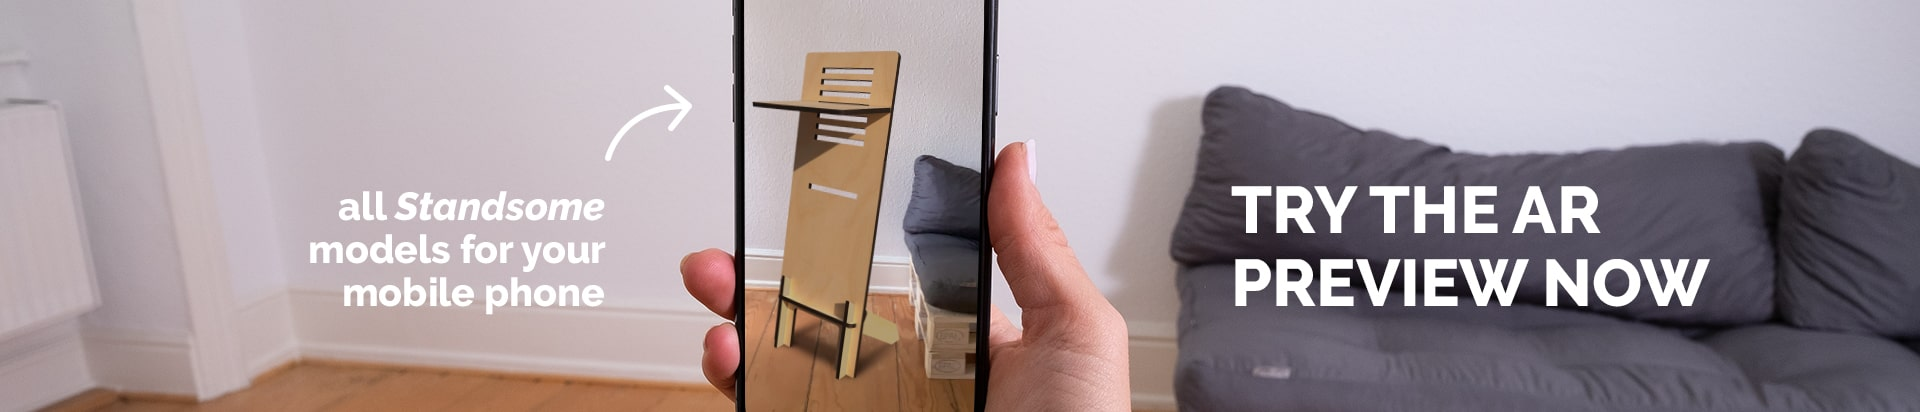 Standsome augmented reality application